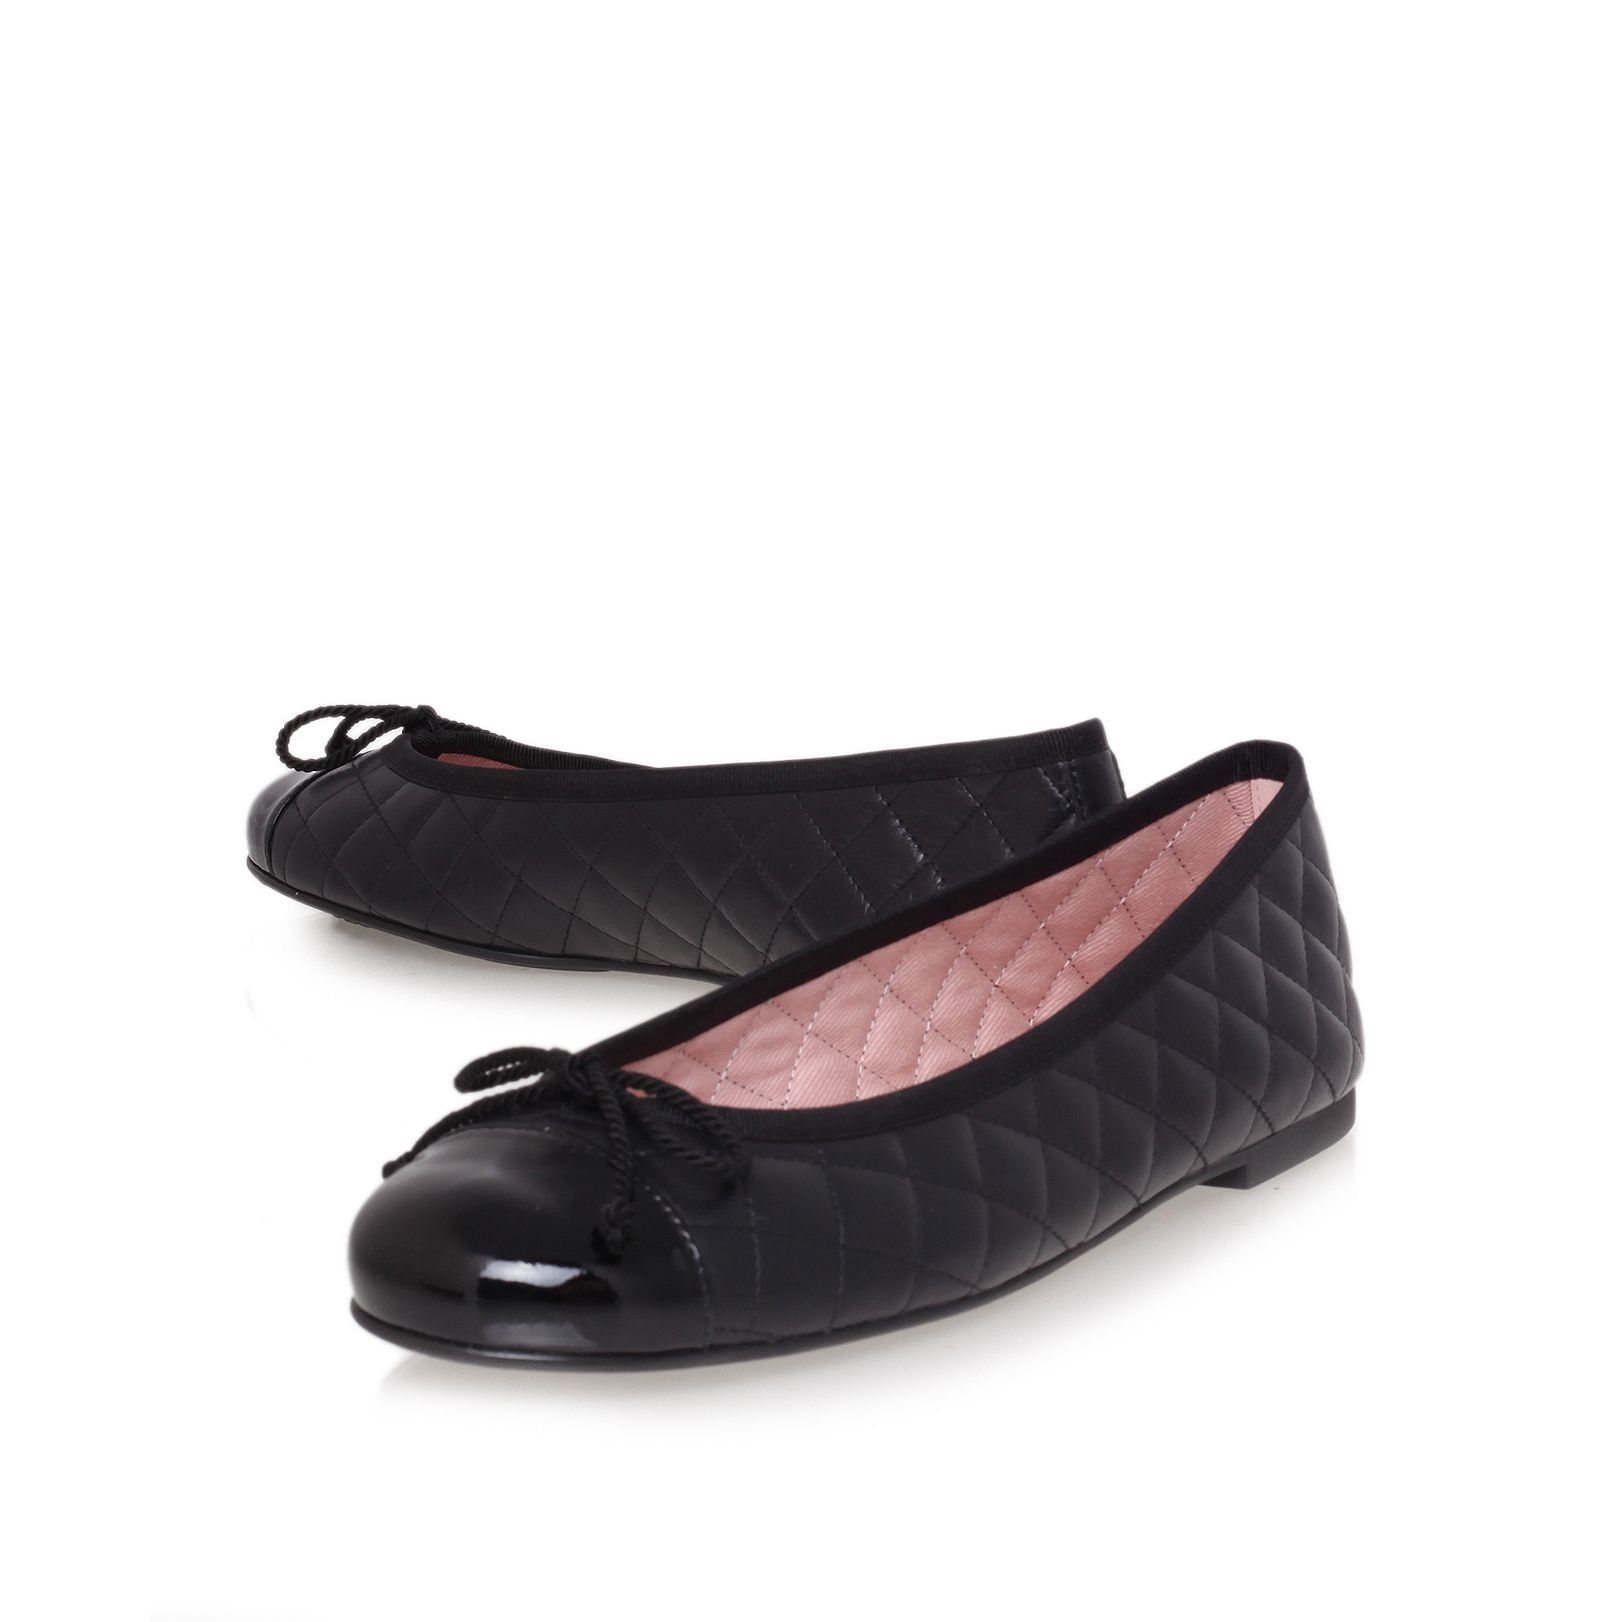 Shade ballet shoes